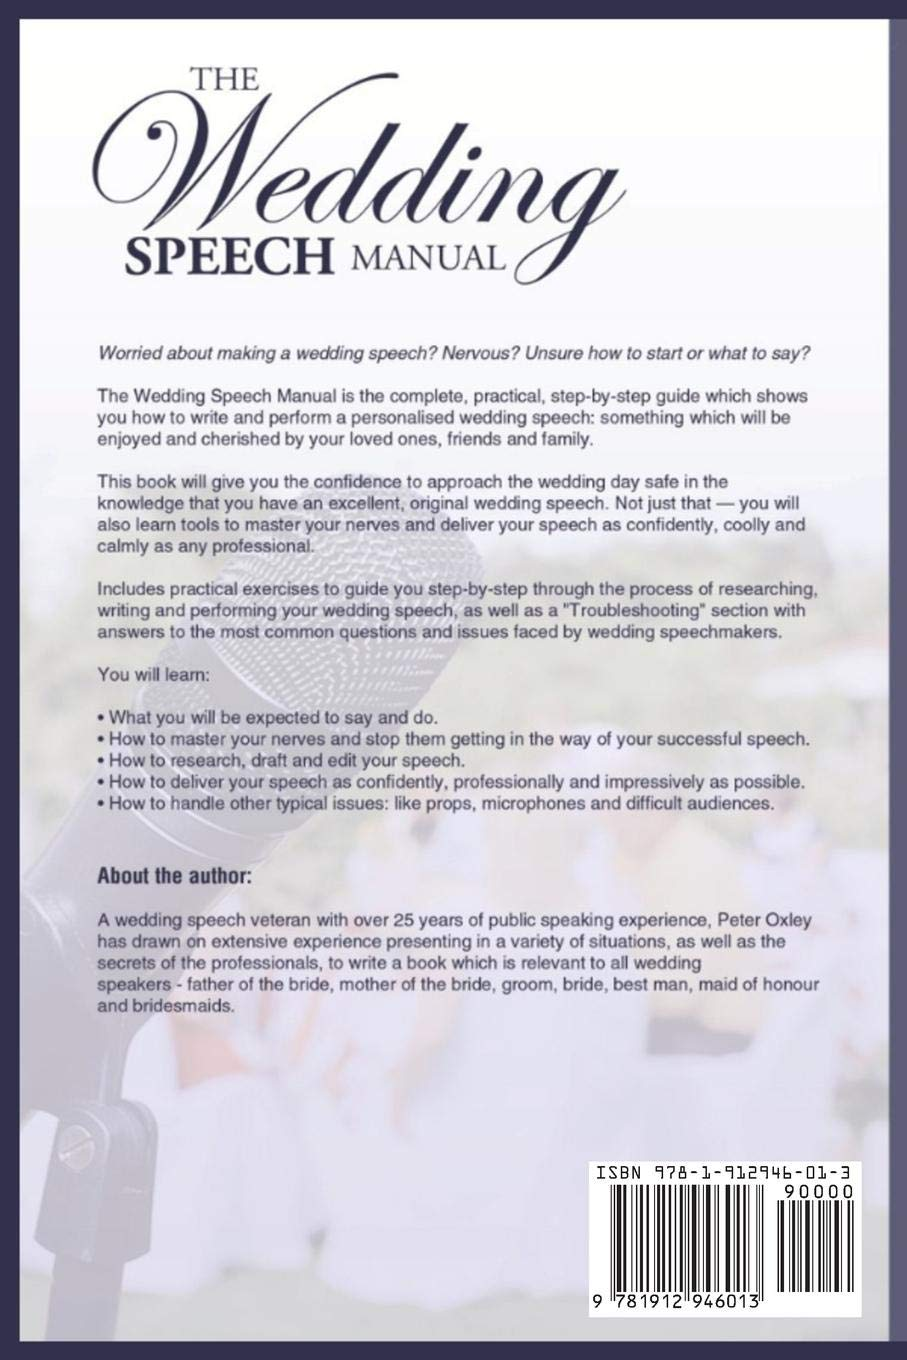 The Wedding Speech Manual: The Complete Guide to Preparing